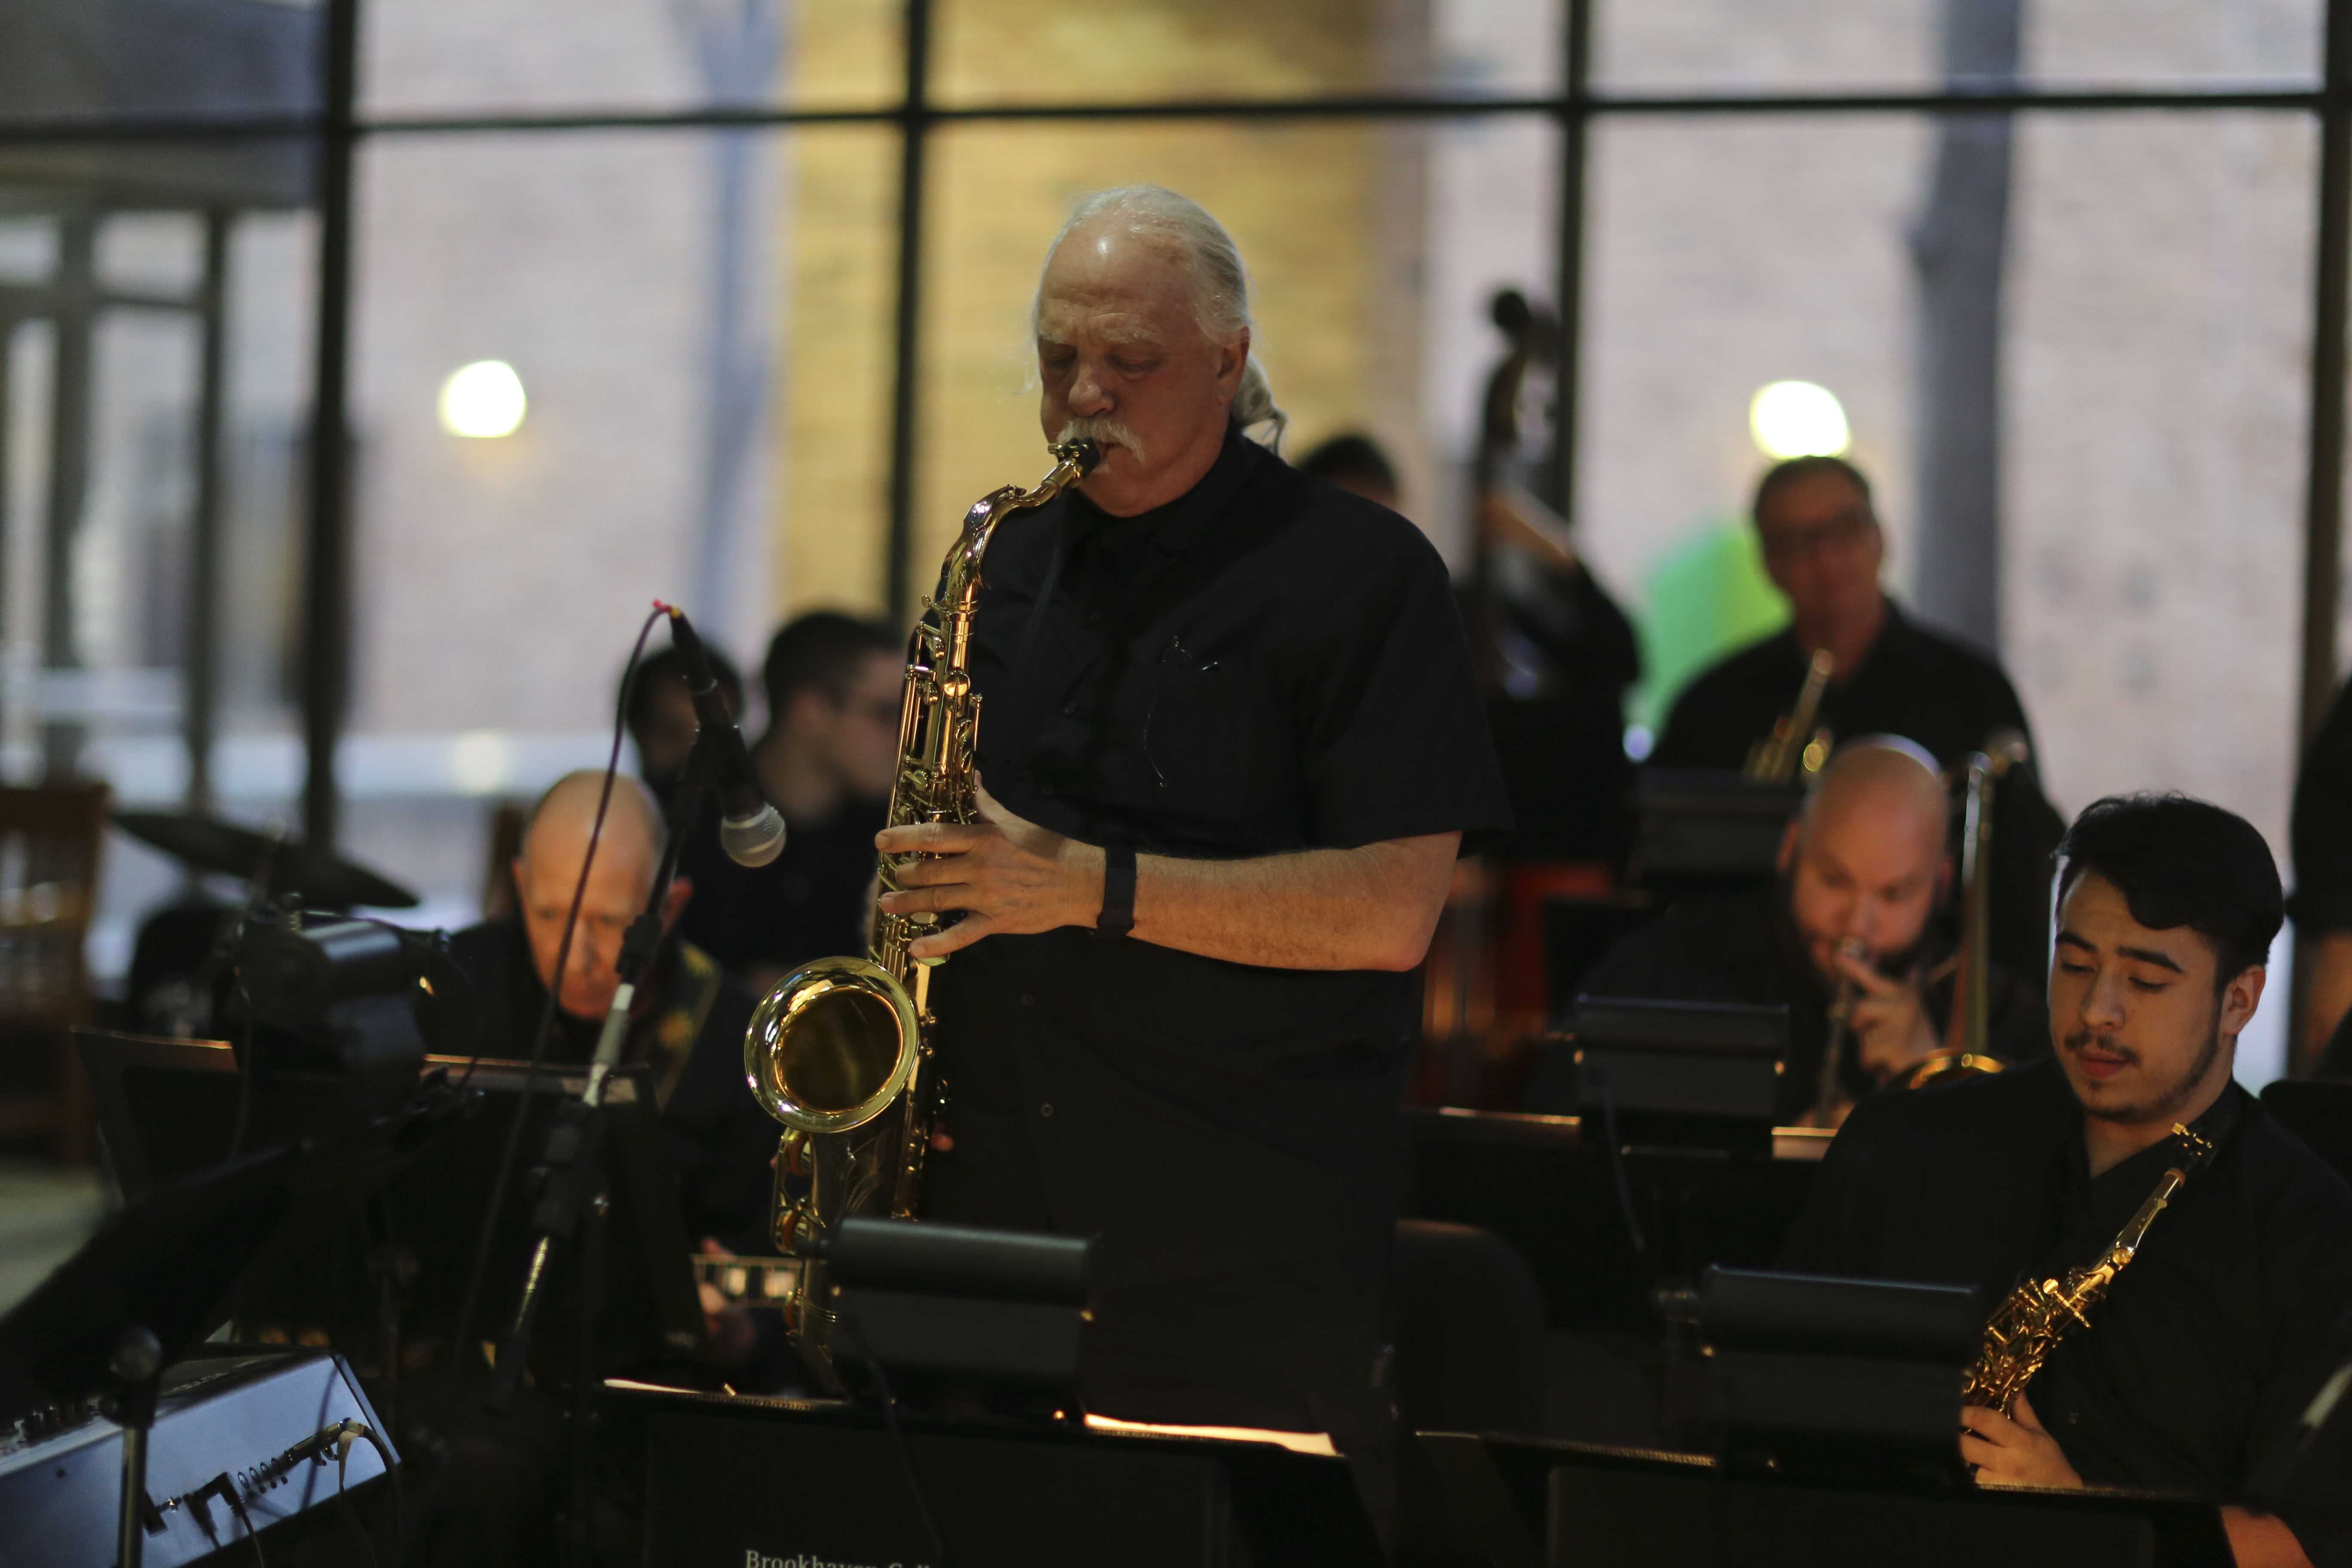 Brookhaven Big Band member Dan Ebie rocks out on his saxophone as guests mill about the Performance Hall lobby.